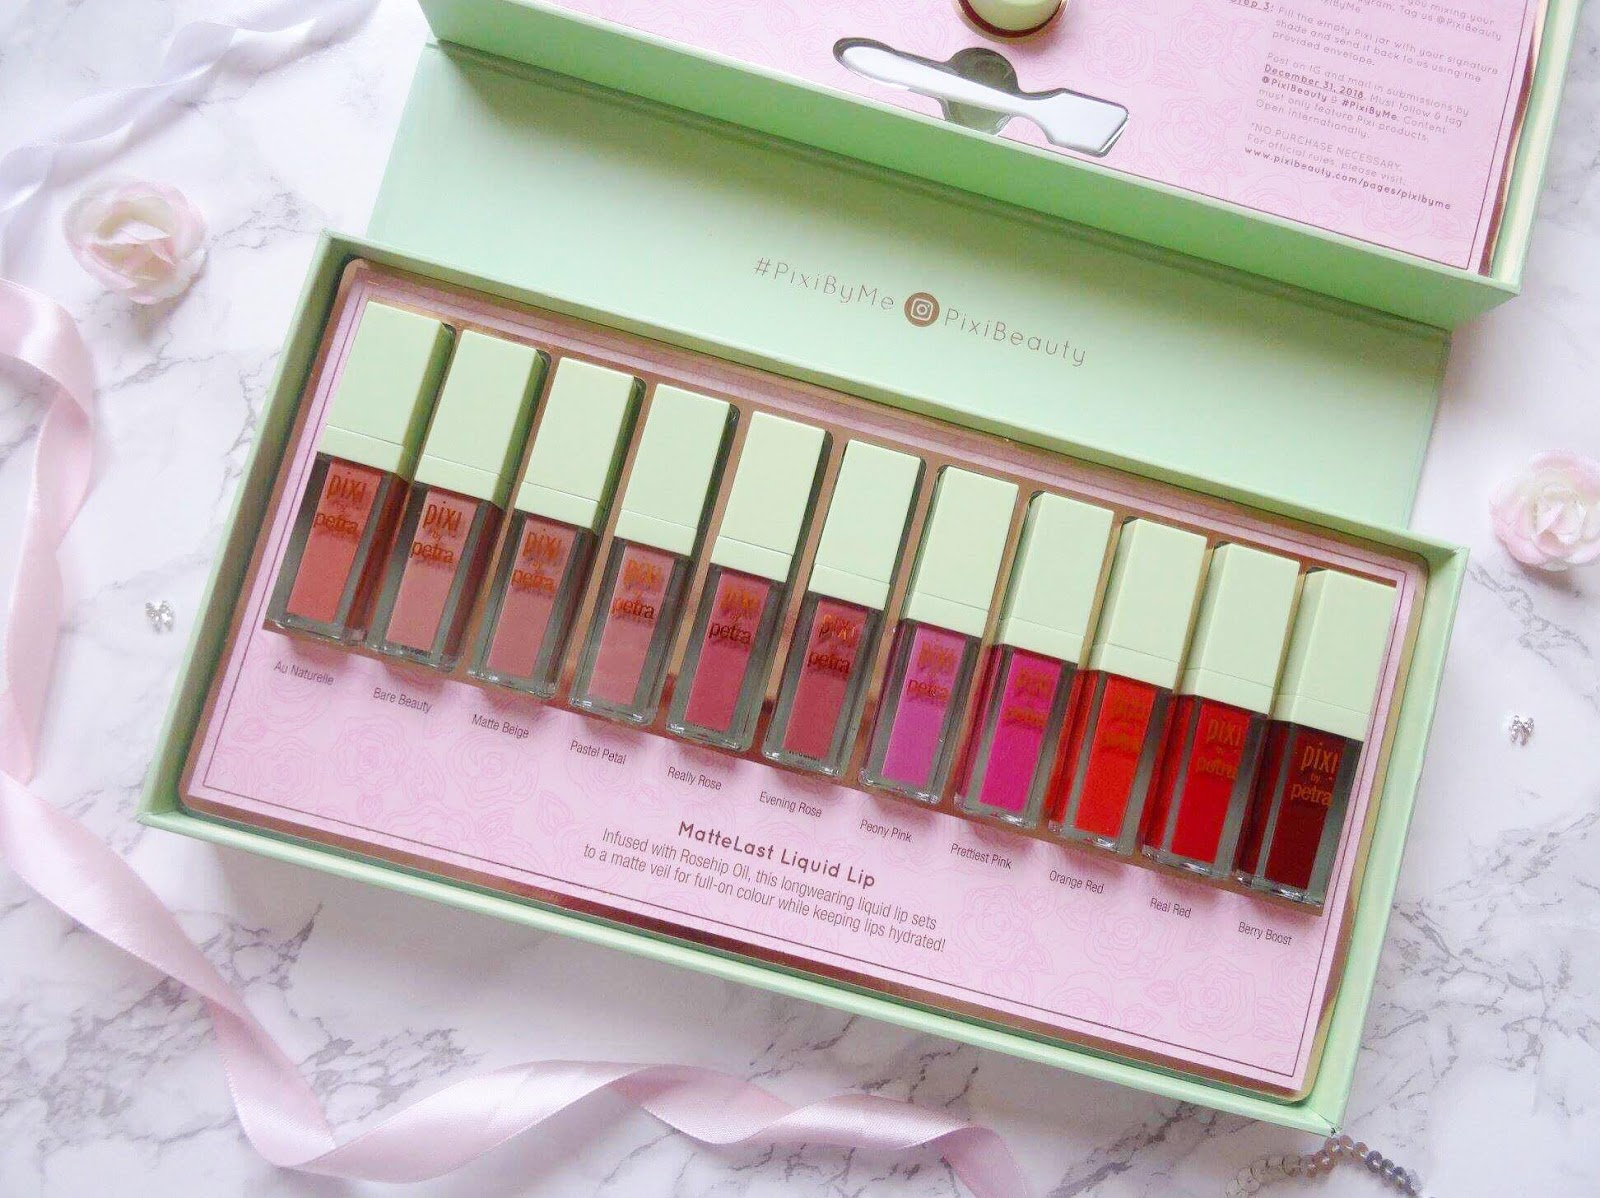 Pixi by Petra PR Package Unboxing